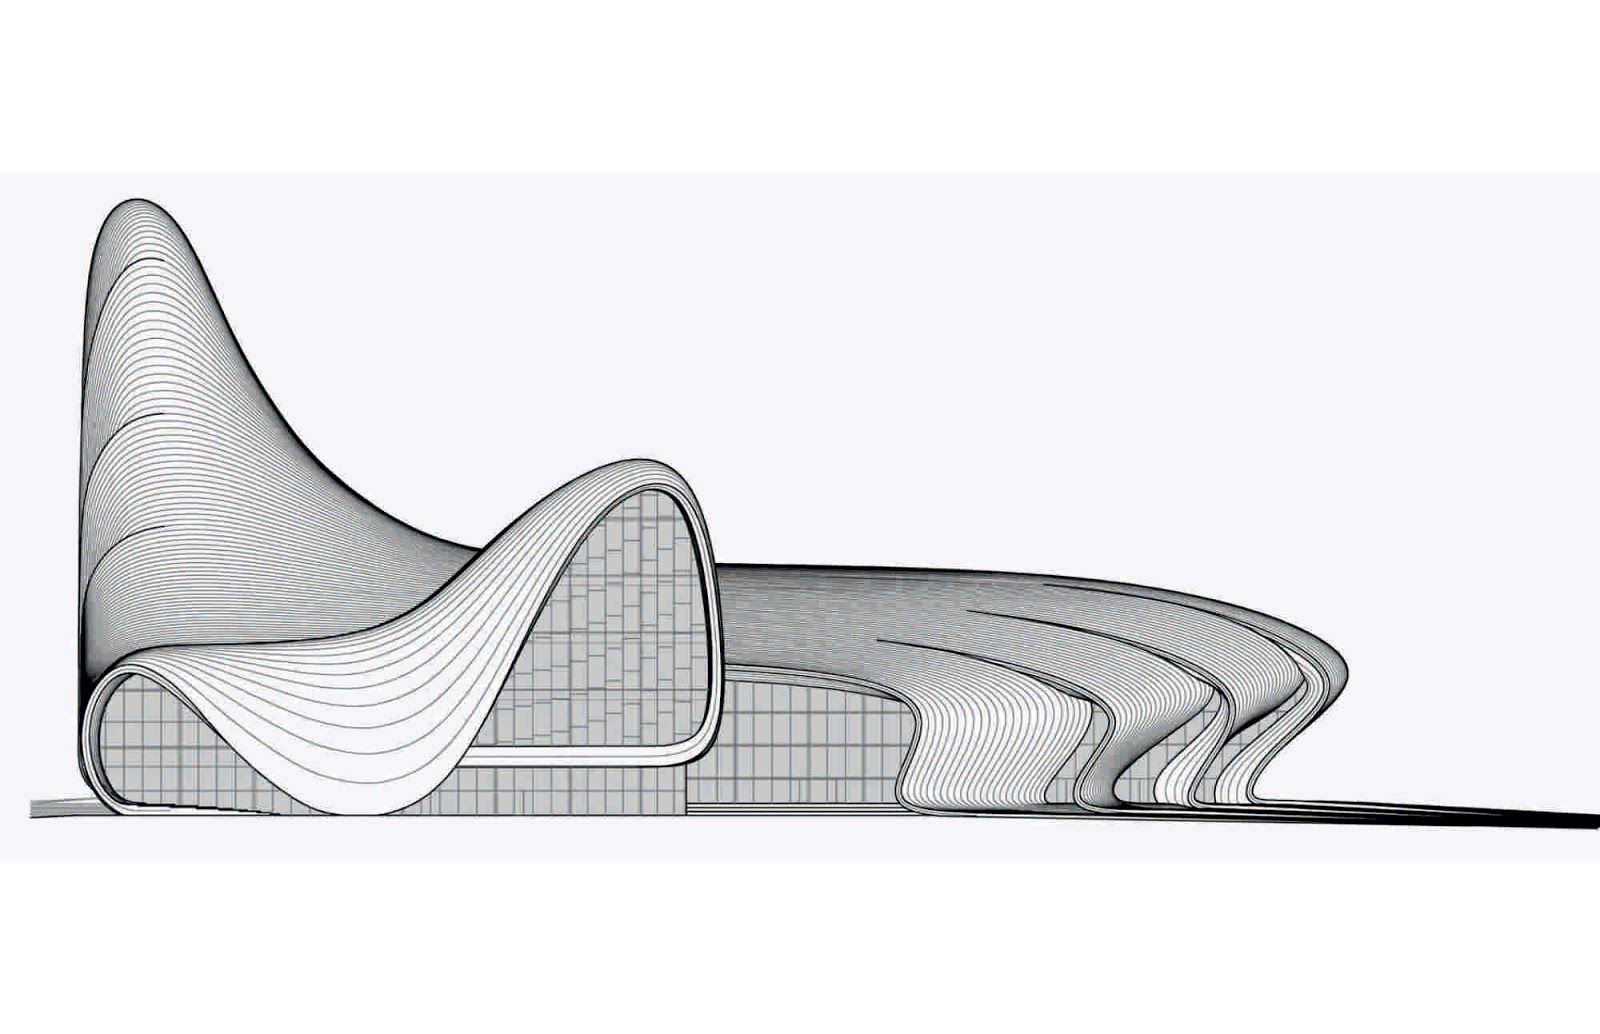 Heydar Aliyev Cultural Center by Zaha Hadid16